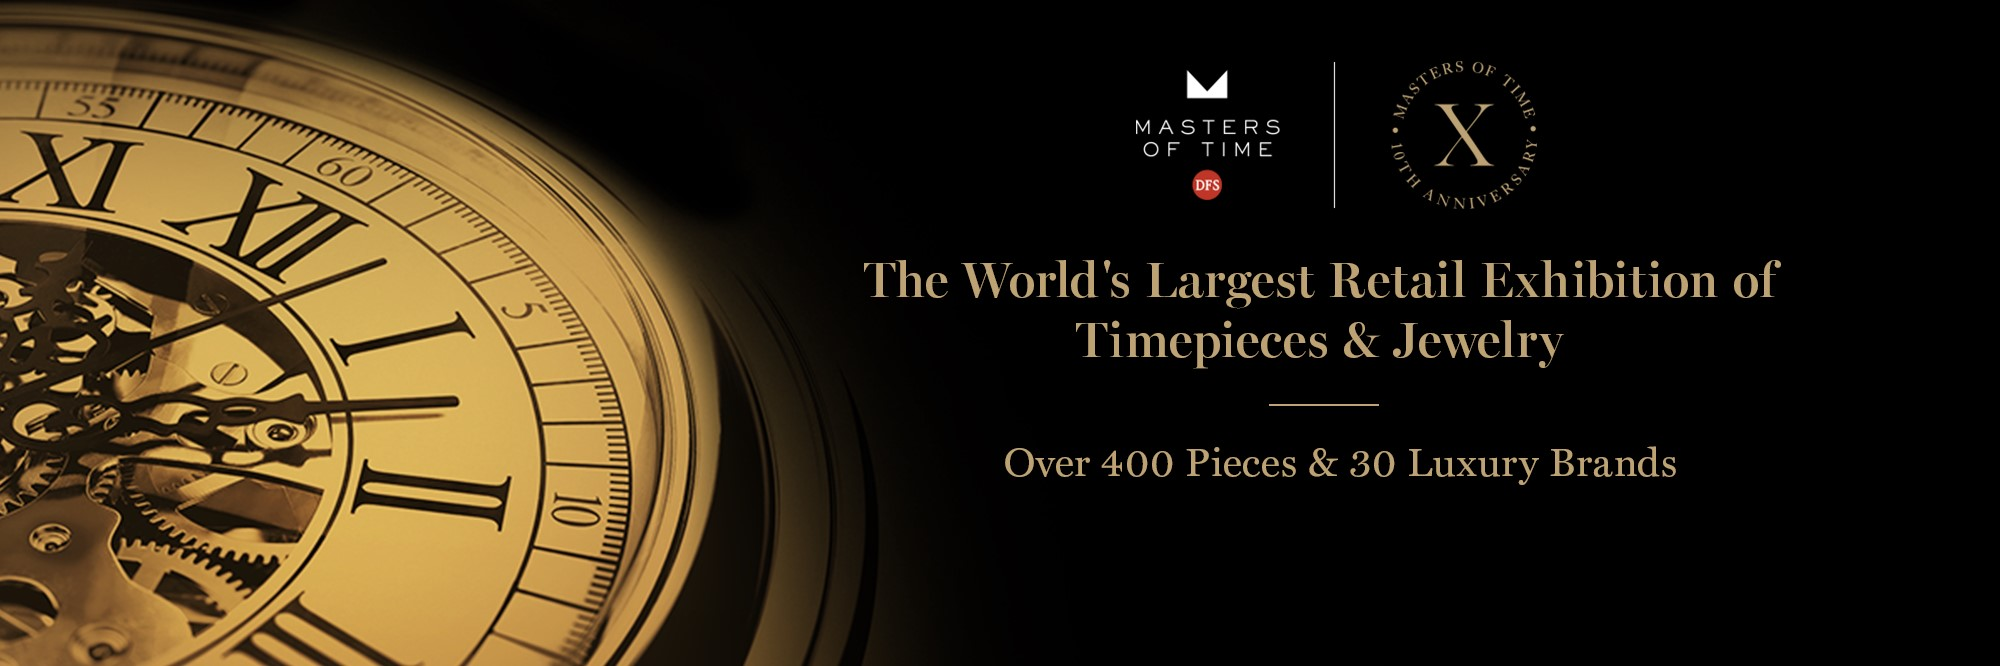 DFS MASTERS OF TIME 2018